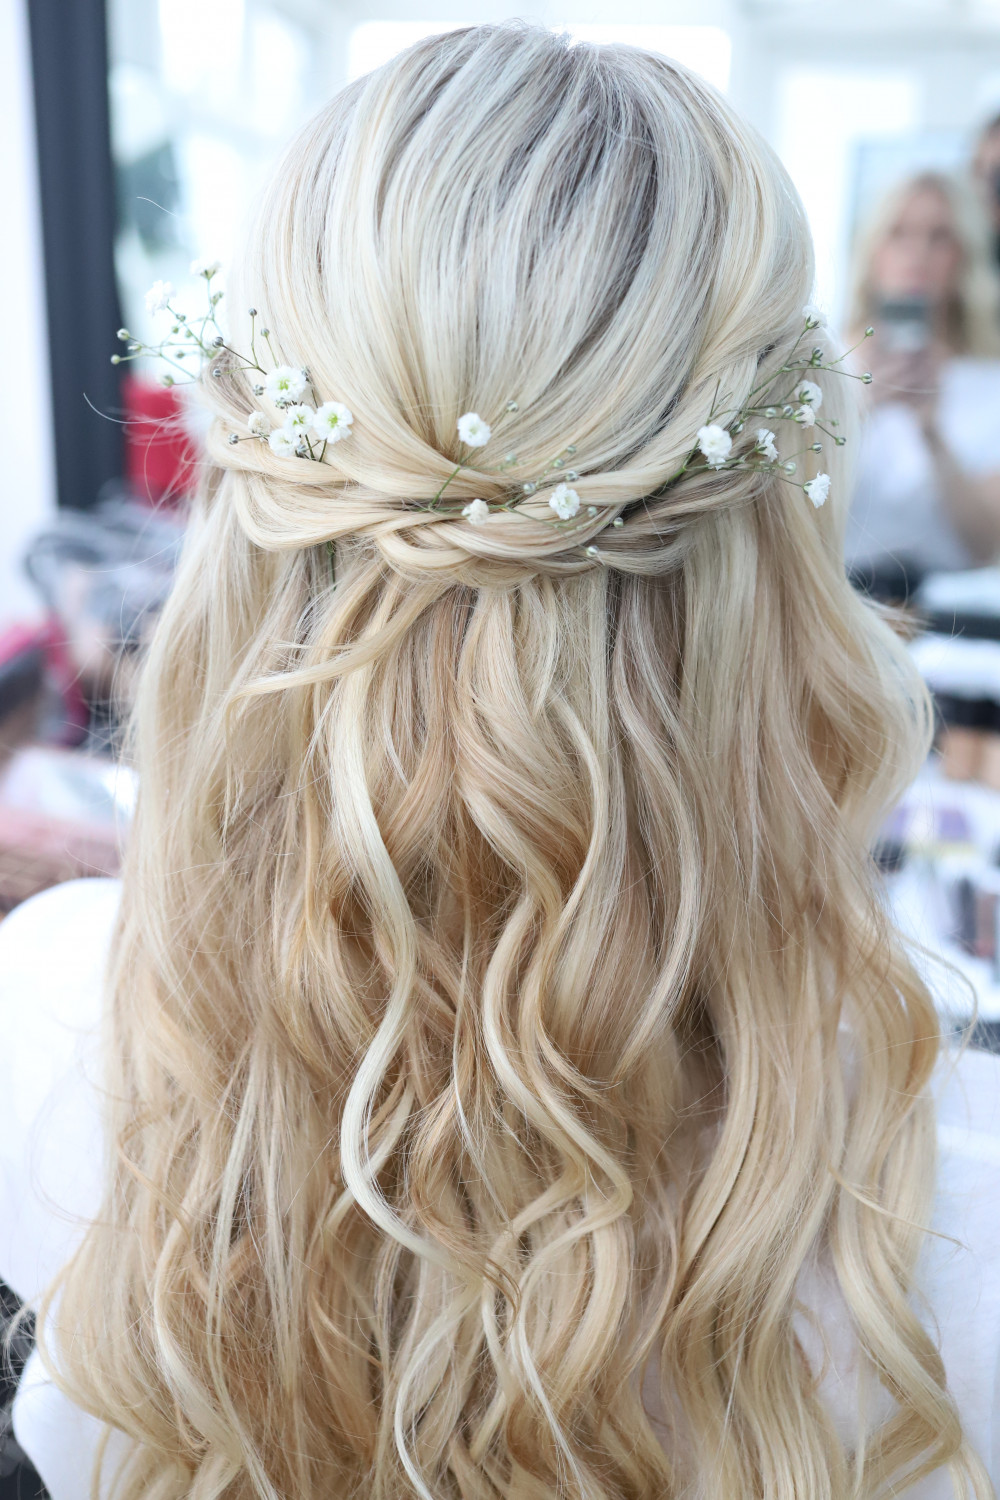 Boho Hair Half Up - Make Me Bridal Artist: Katy Djokic - Wedding Hair & Makeup. #boho #hairhalfup